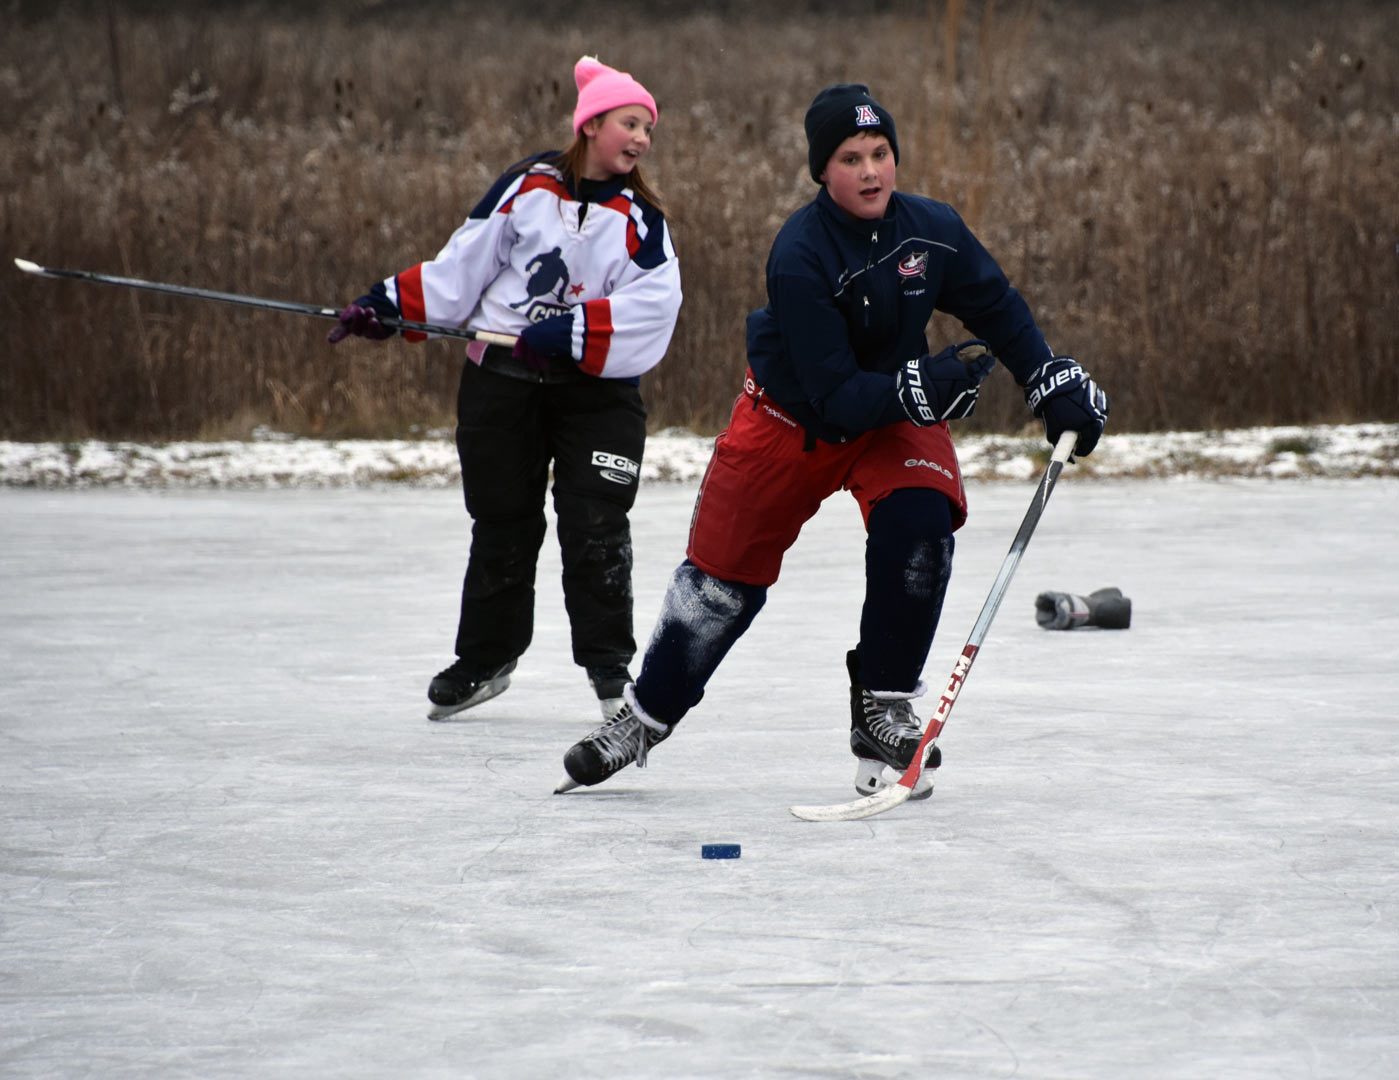 Pond hockey at Battelle Darby Creek skating pond. Photo by Tina Fronk.